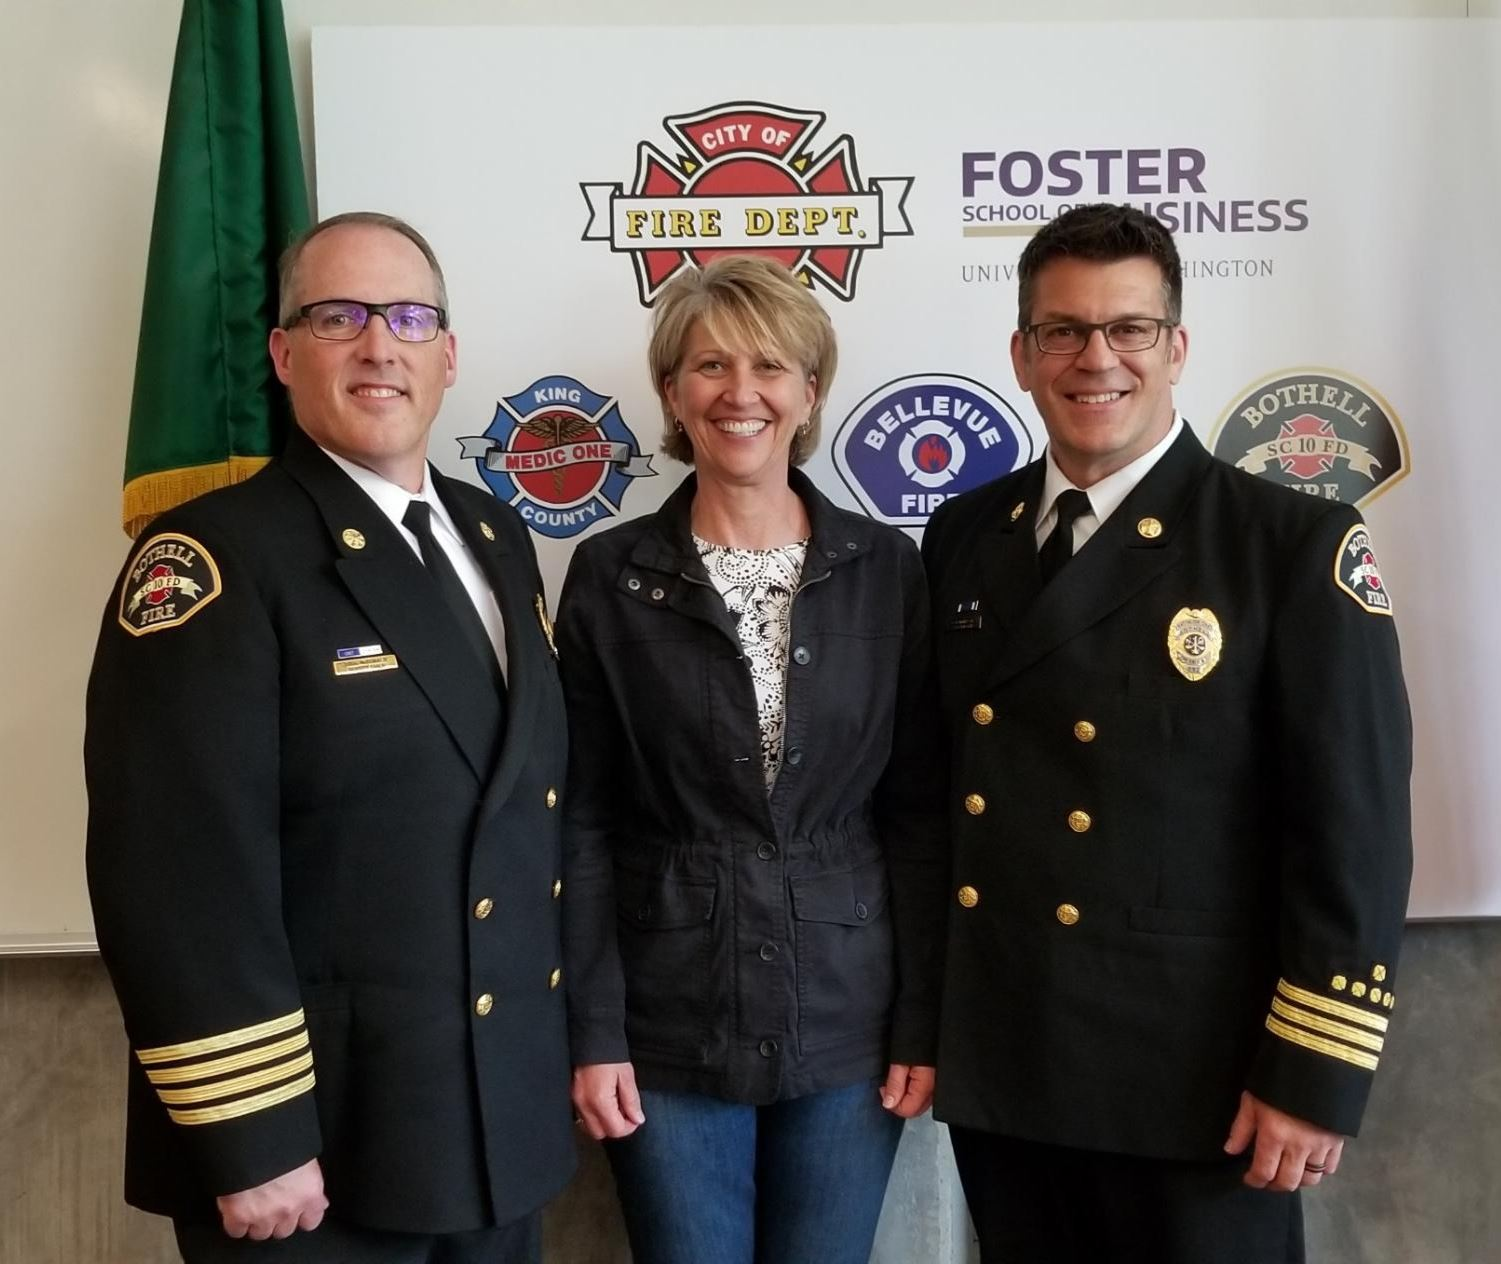 Seattle Fire Department Executive Leadership Academy